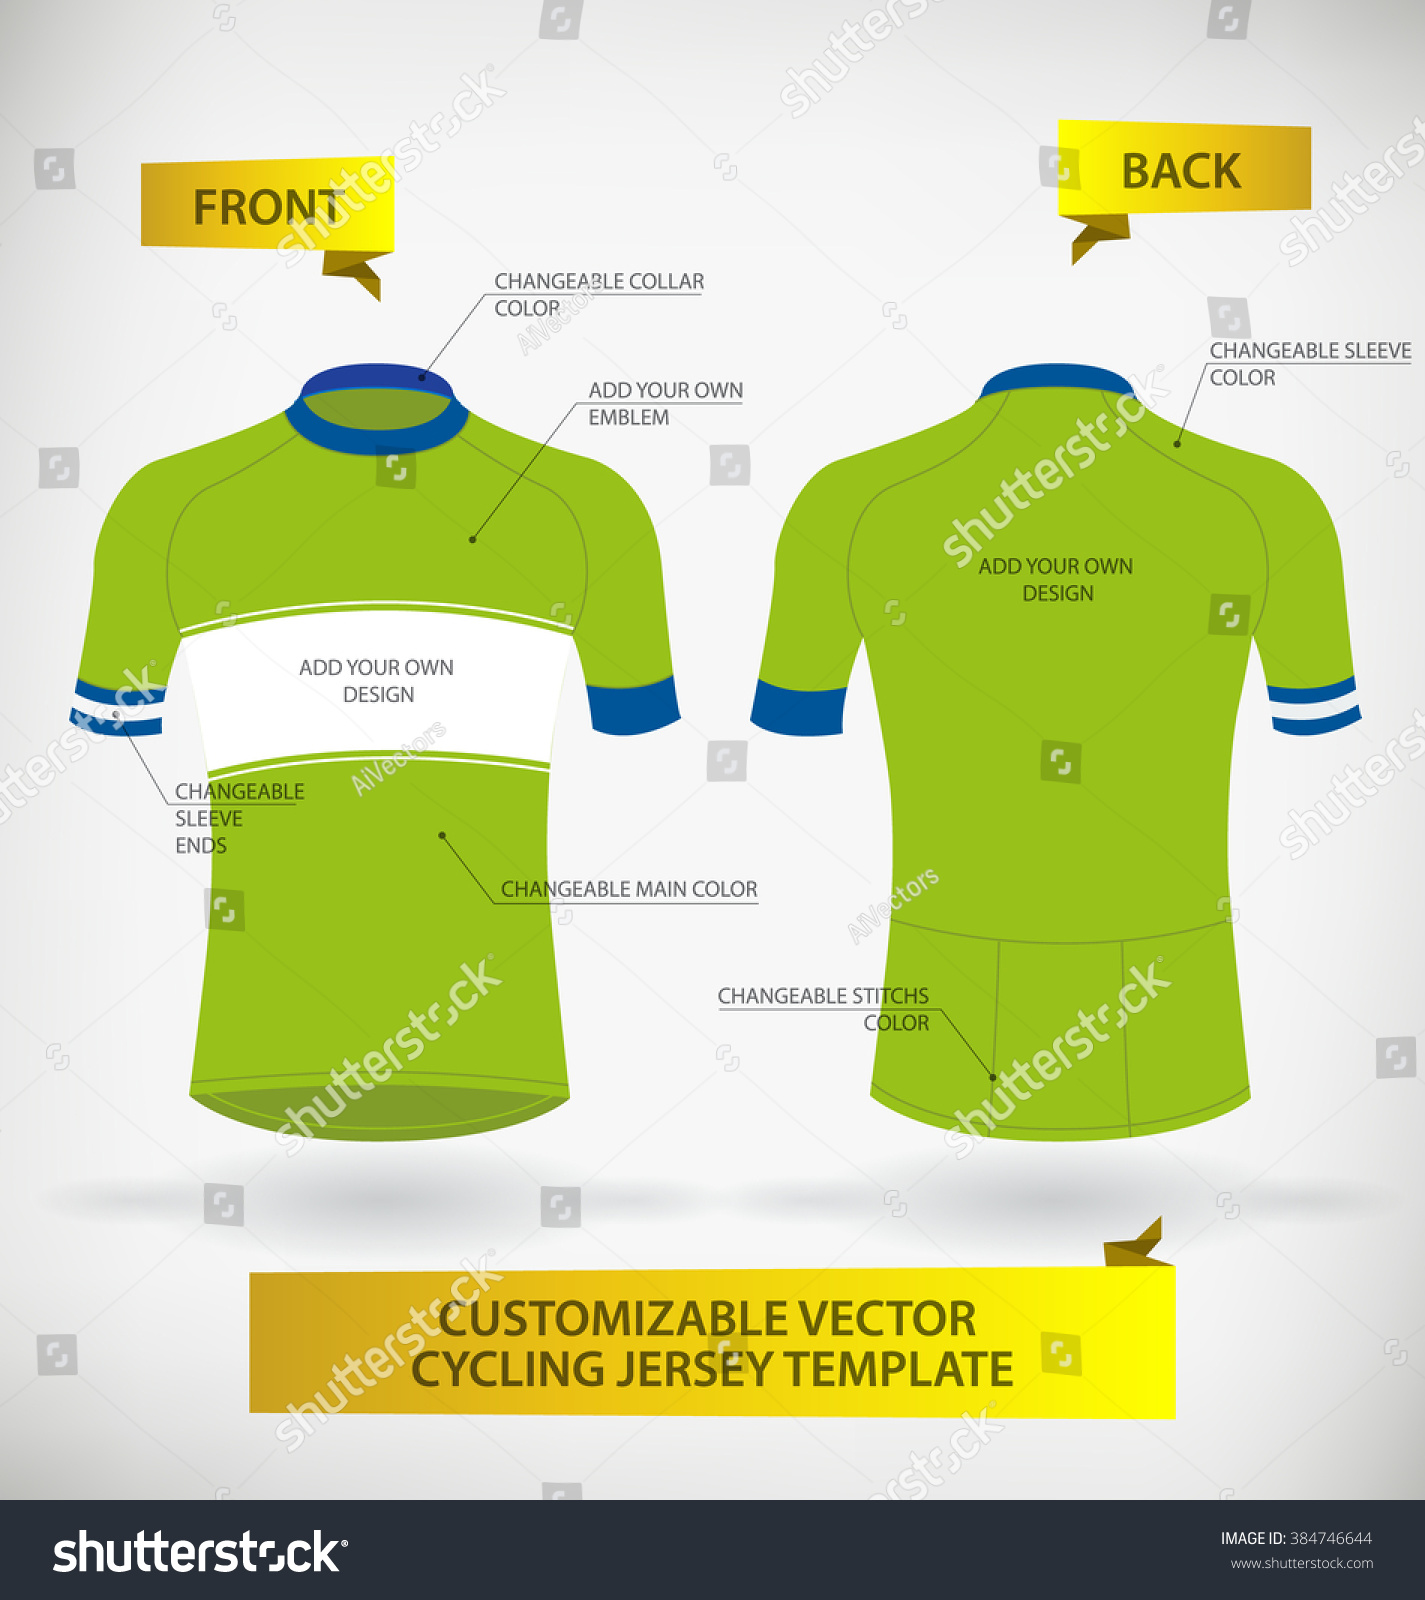 Cycling shirt design your own - Customizable Vector Cycling Jersey Template Preview Save To A Lightbox